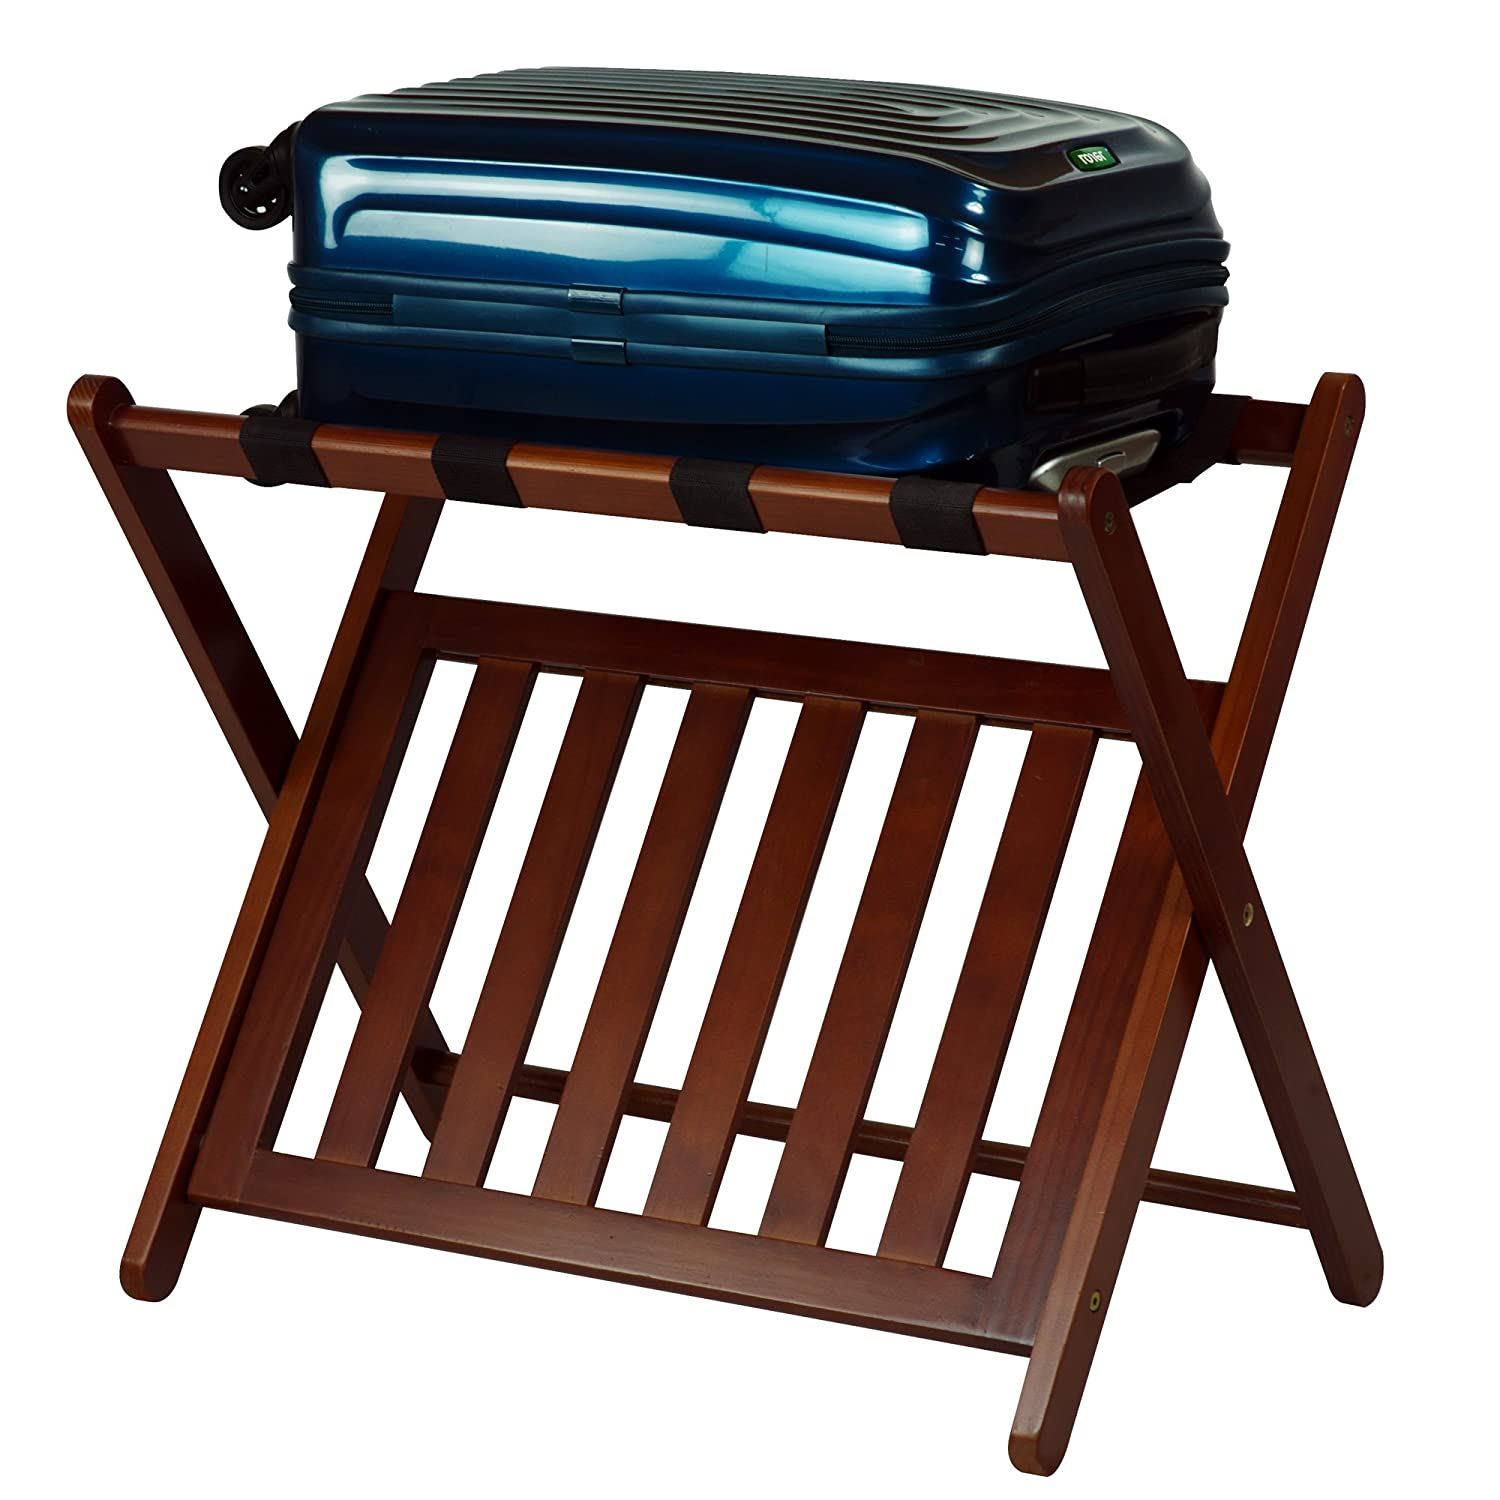 Amazon.com: Casual Home Luggage Rack with Shelf: Home & Kitchen